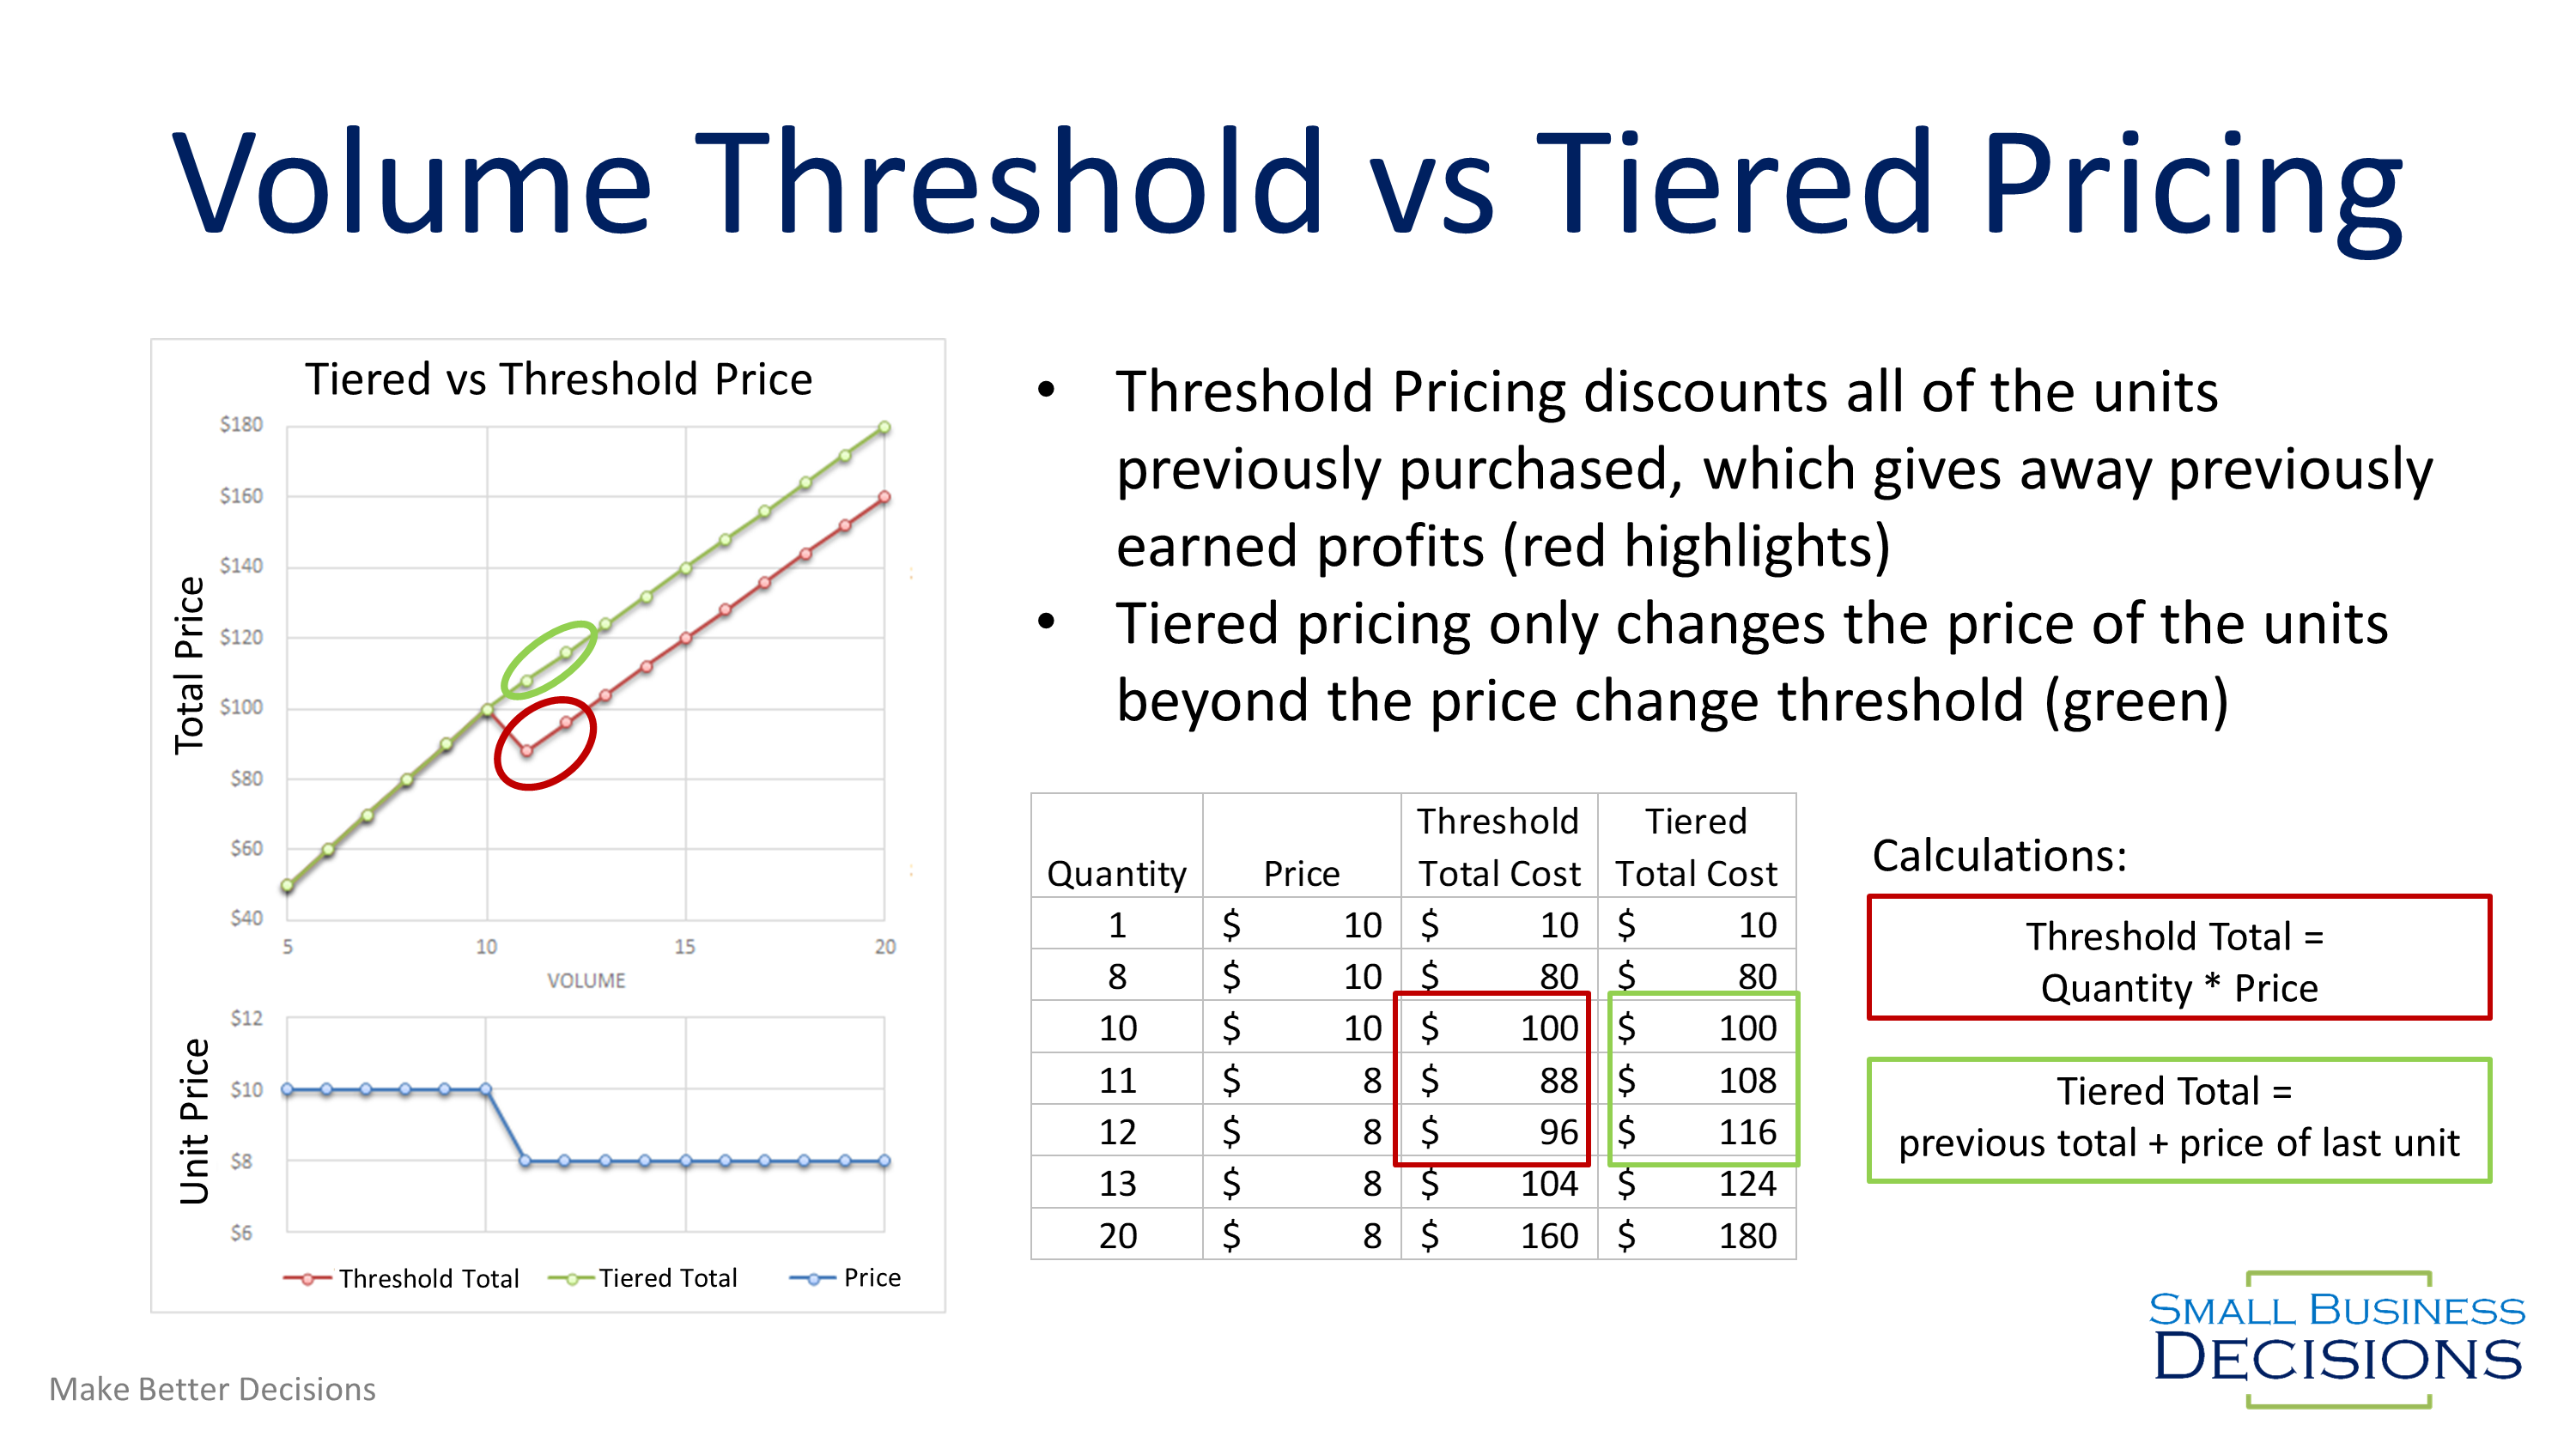 Tiered Pricing Vs Volume Threshold Pricing